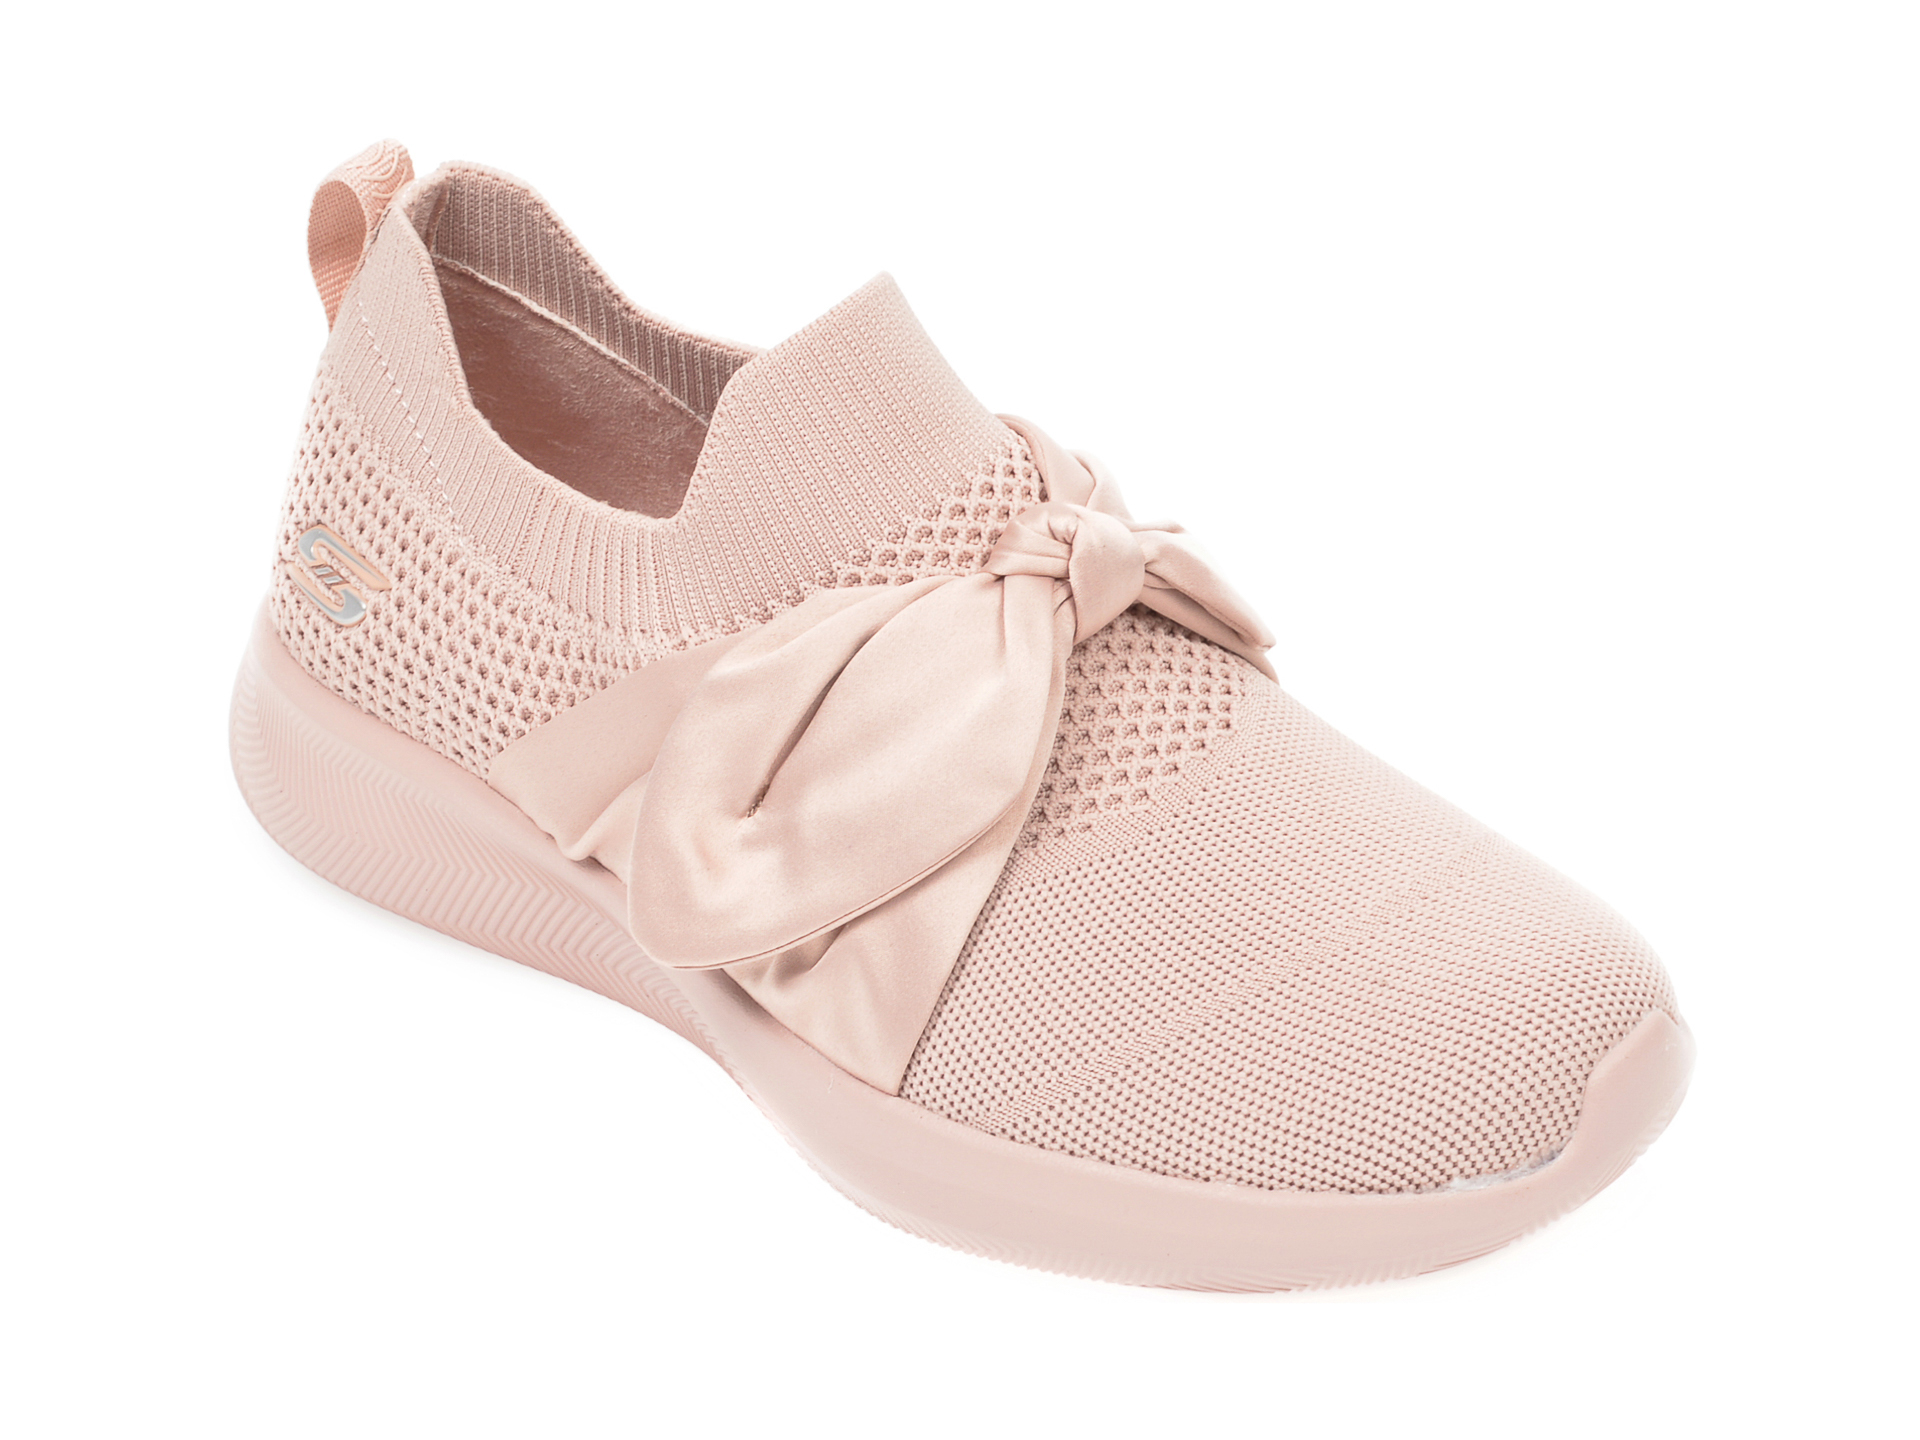 Pantofi sport SKECHERS nude, Bobs Squad 2 Bow Beauty, din material textil